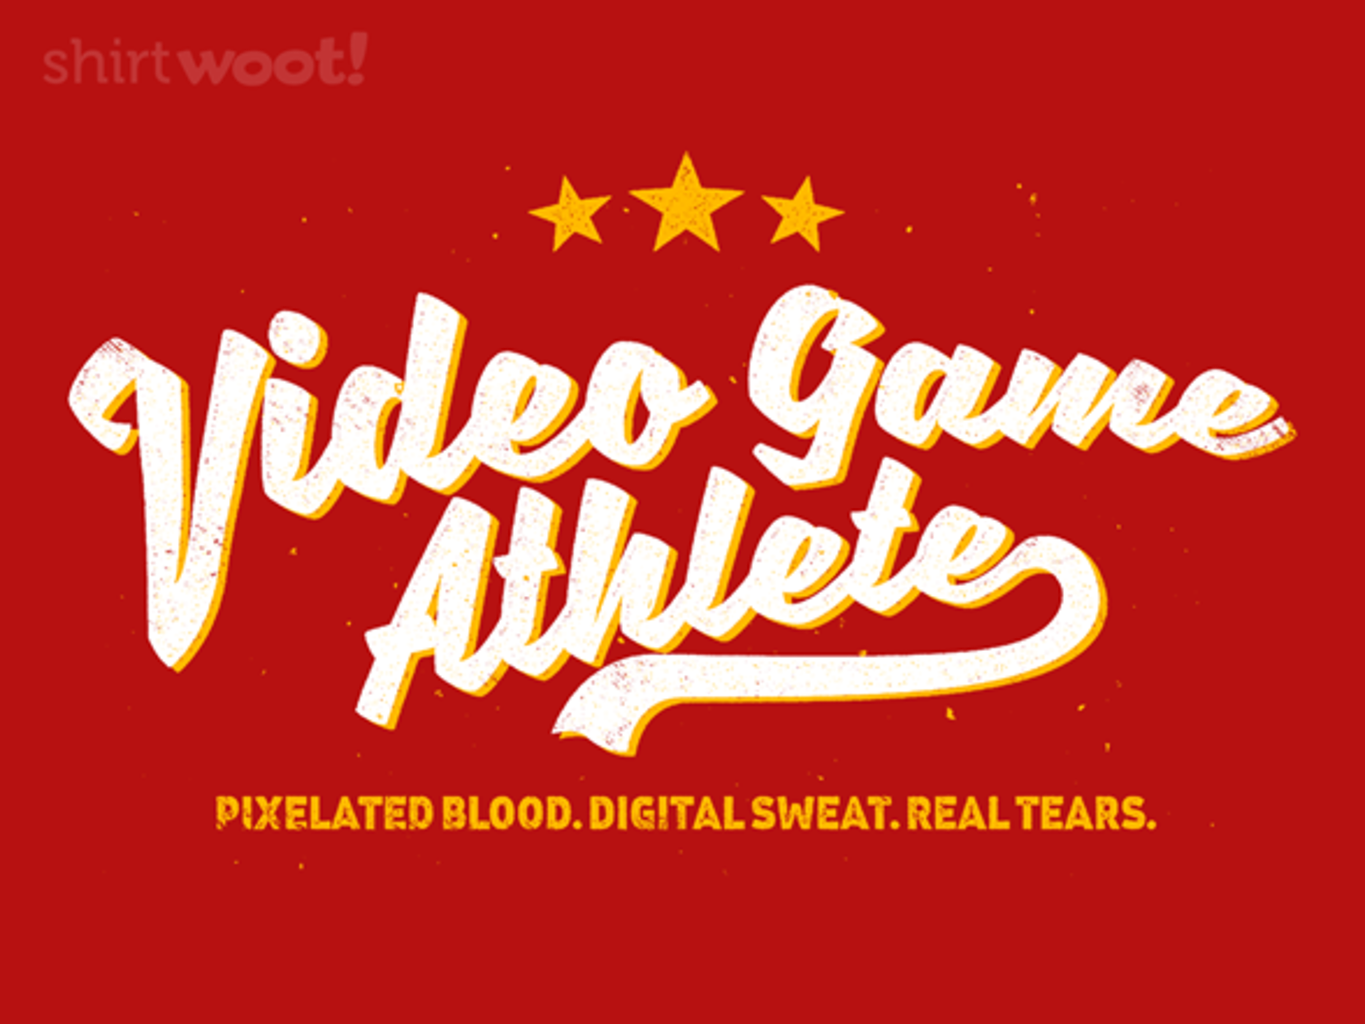 Woot!: Video Game Athlete